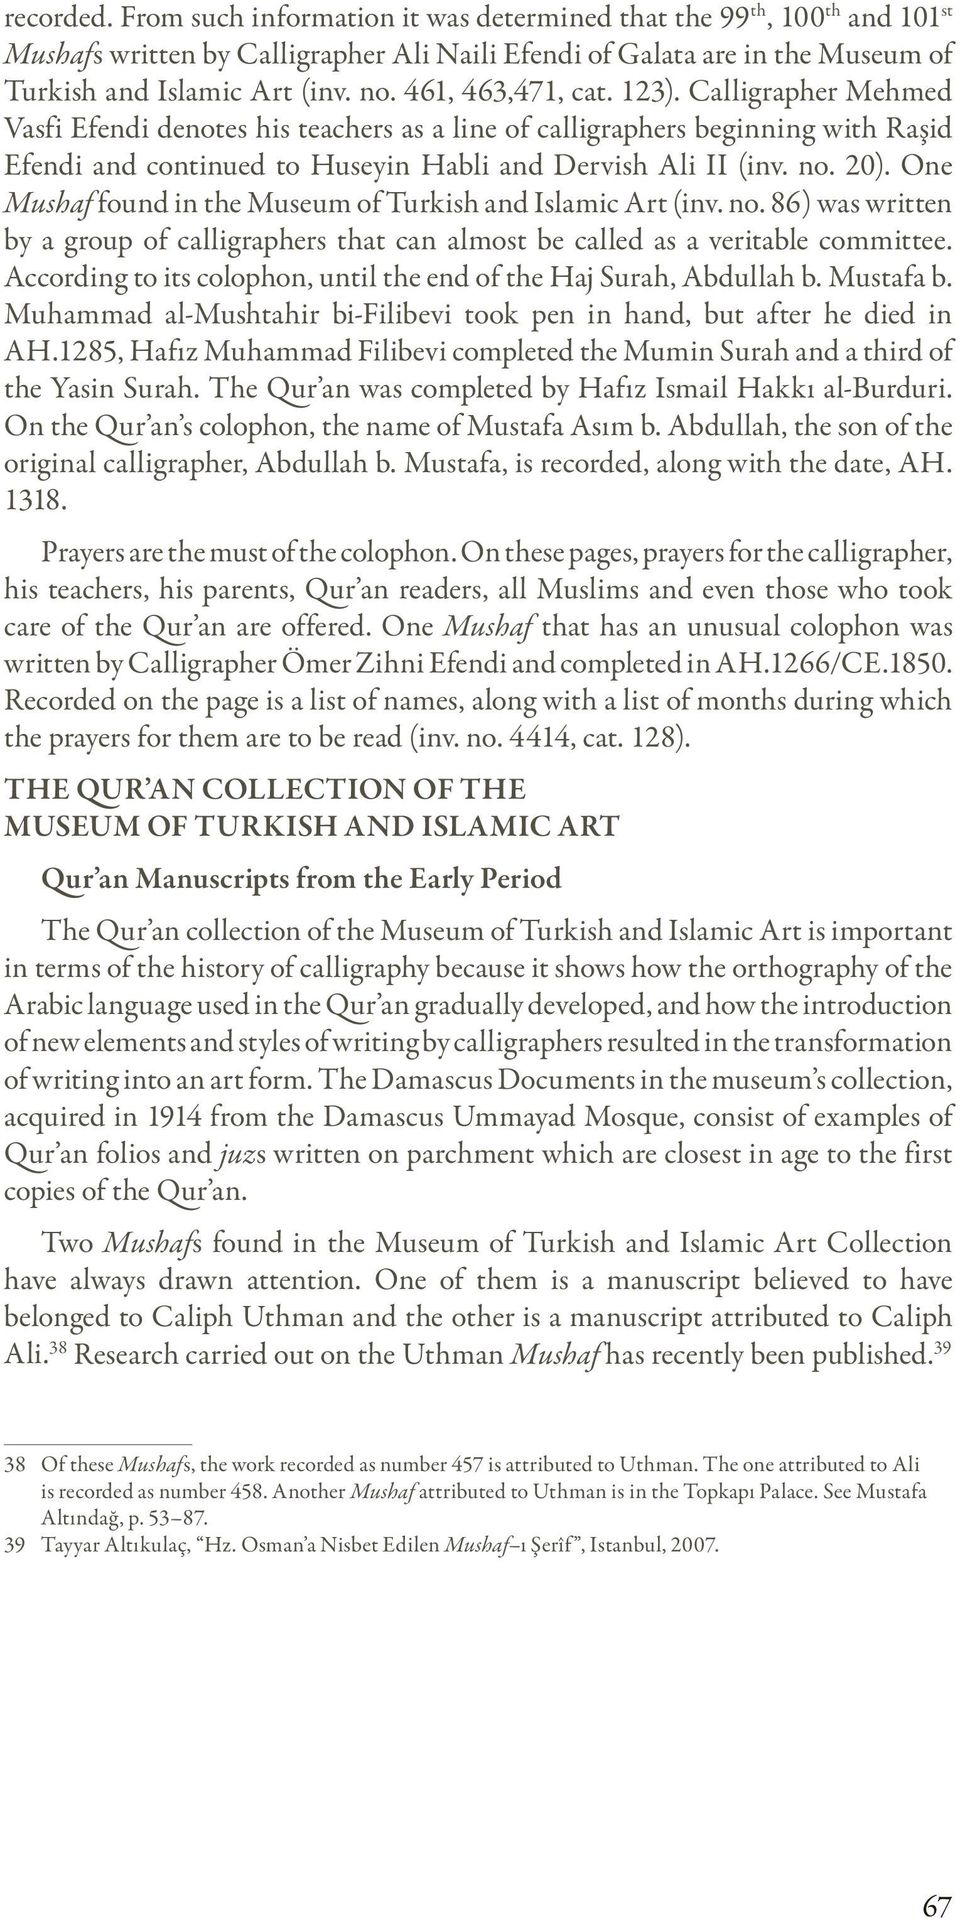 One Mushaf found in the Museum of Turkish and Islamic Art (inv. no. 86) was written by a group of calligraphers that can almost be called as a veritable committee.